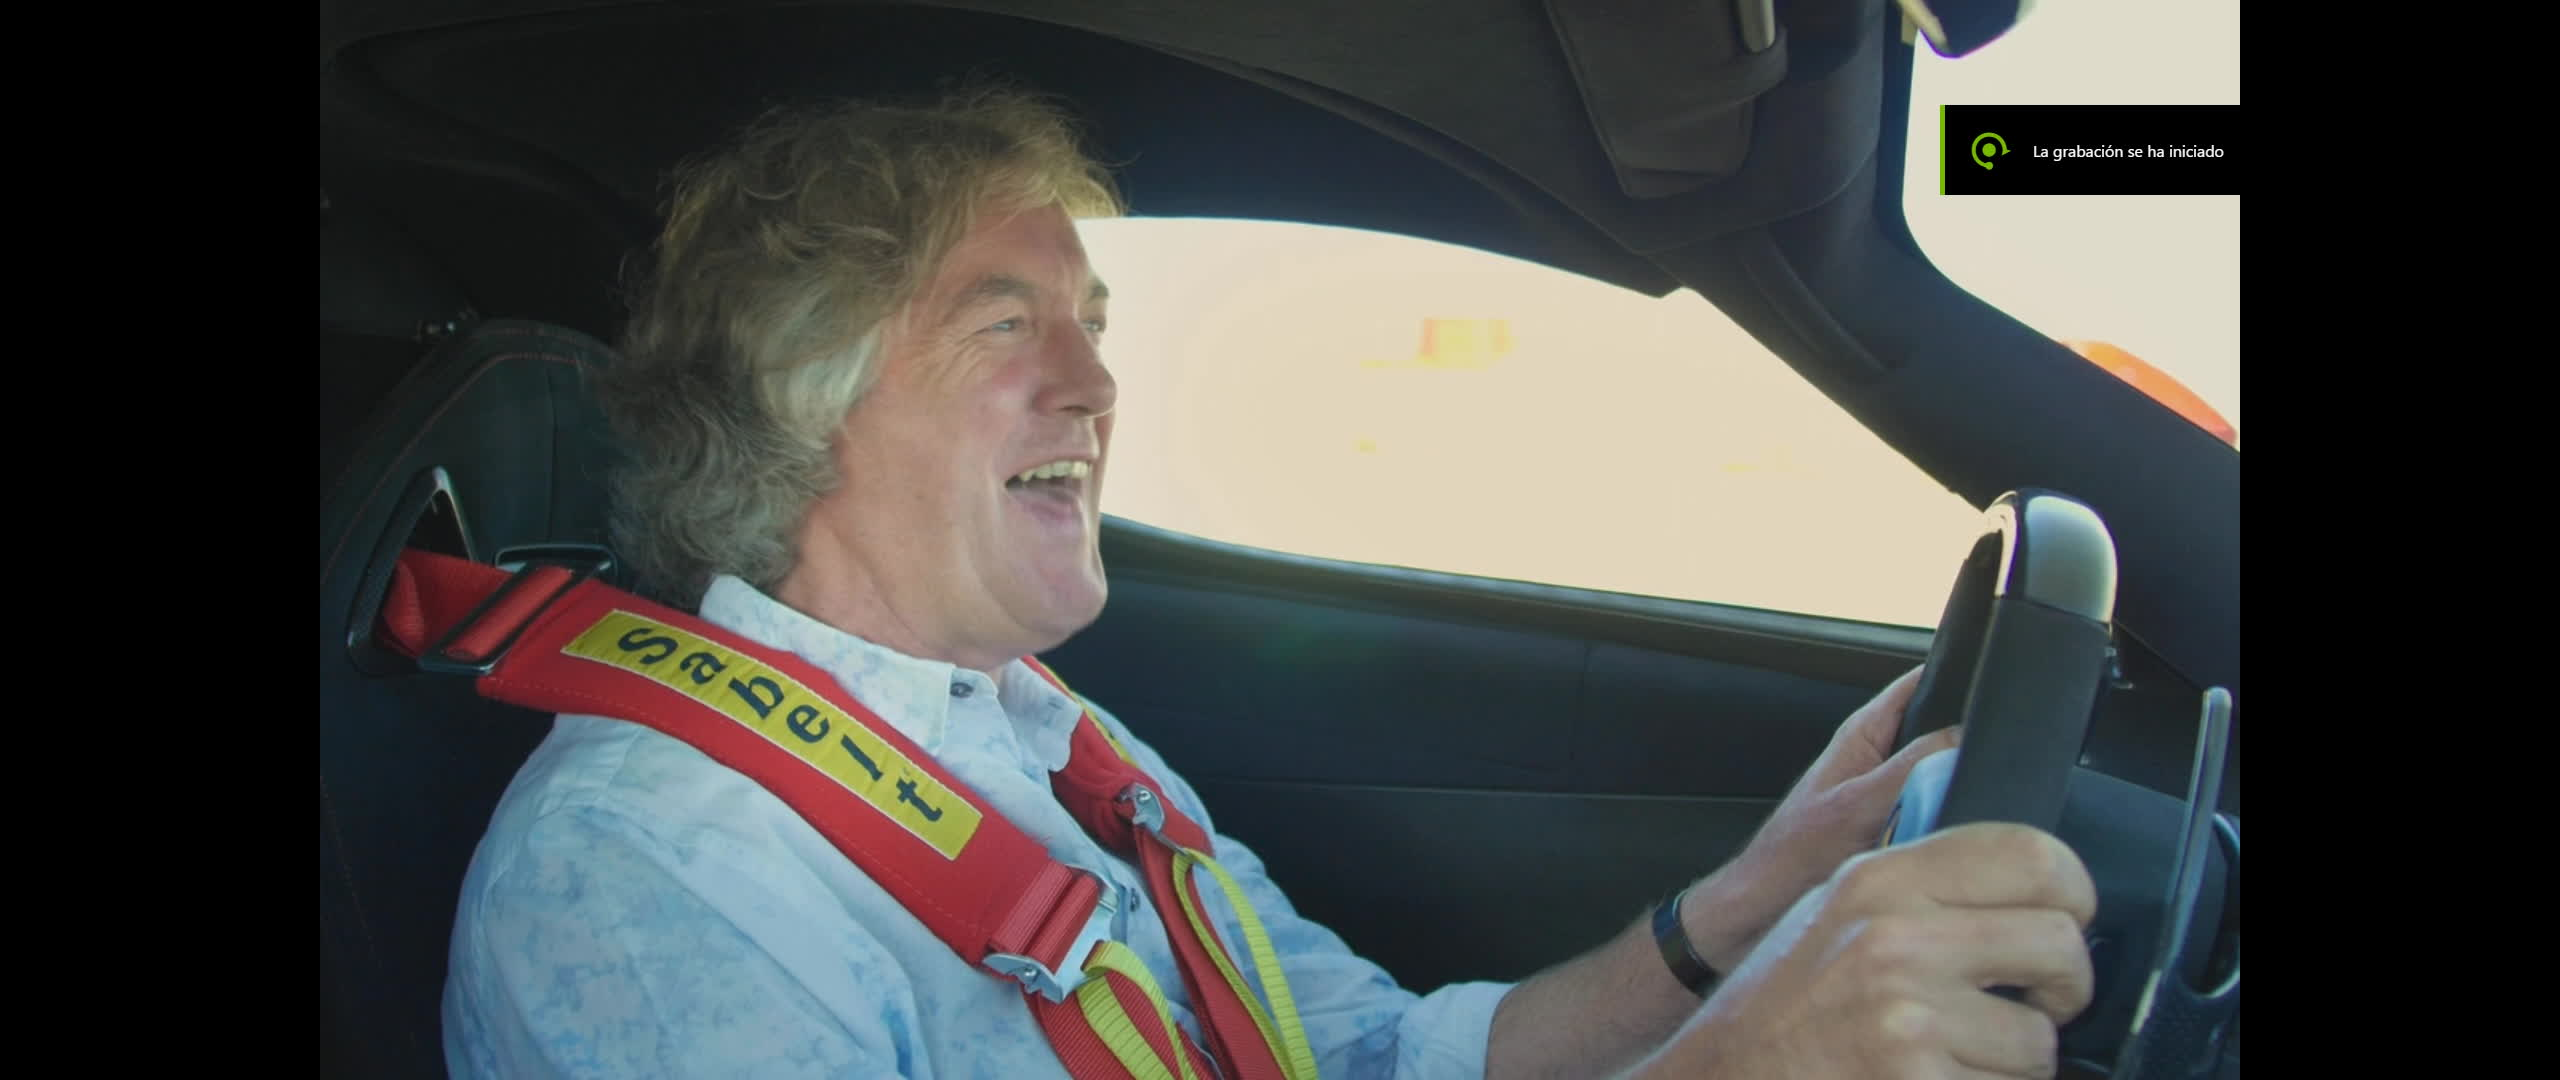 thegrandtour, Never saw Jezza so scared driving a car GIFs